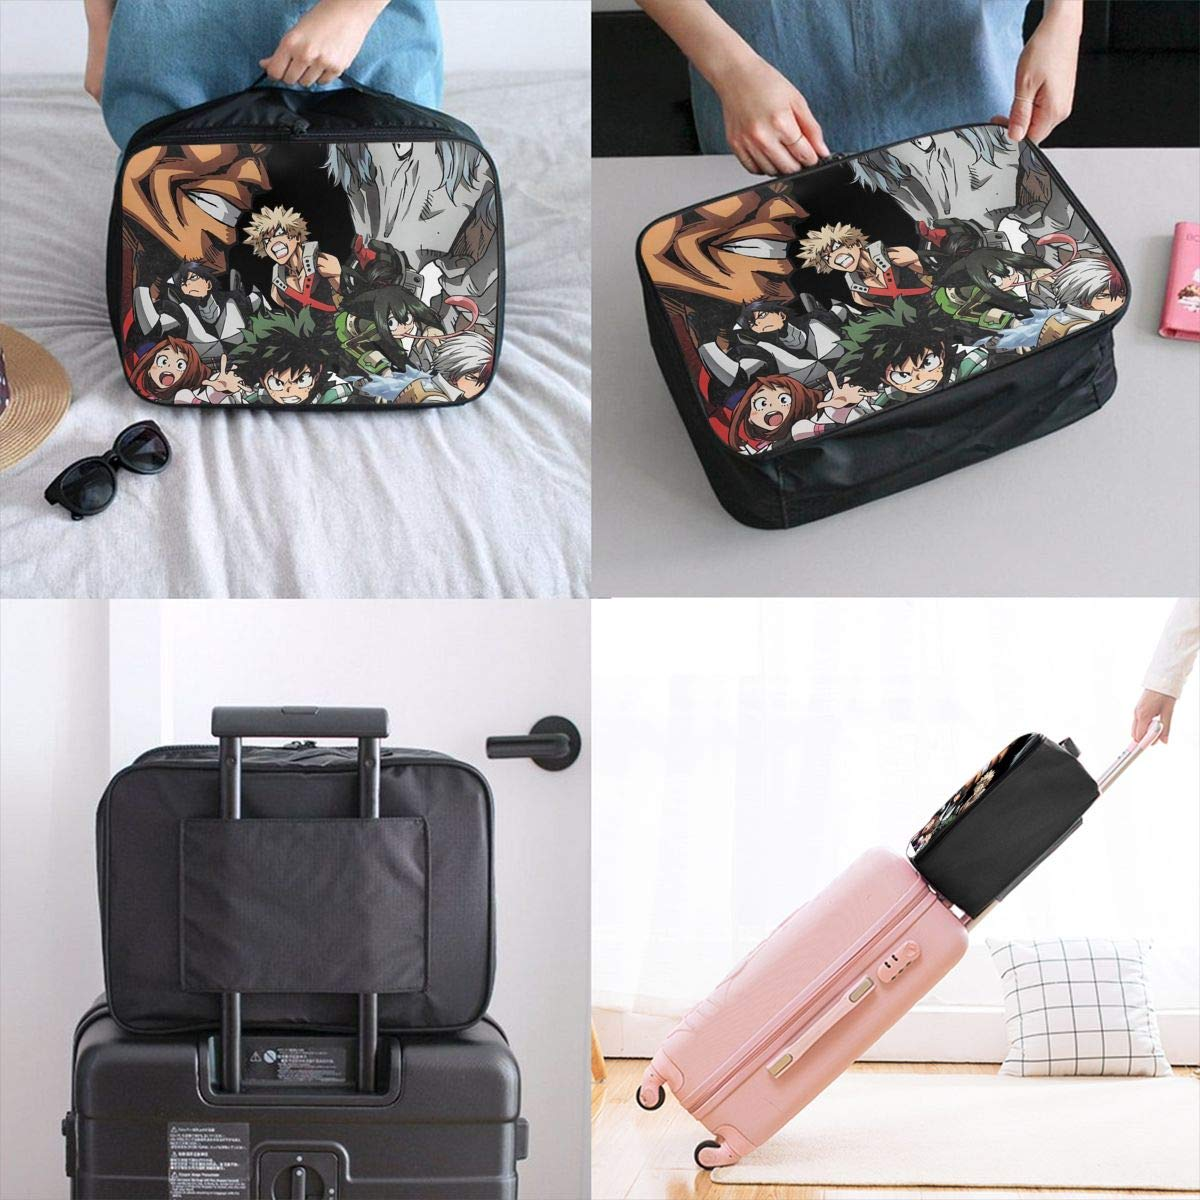 GEWKHKI My Hero Academia Travel Duffel Bag Portable Storage Carry Luggage Tote Trolley Bag